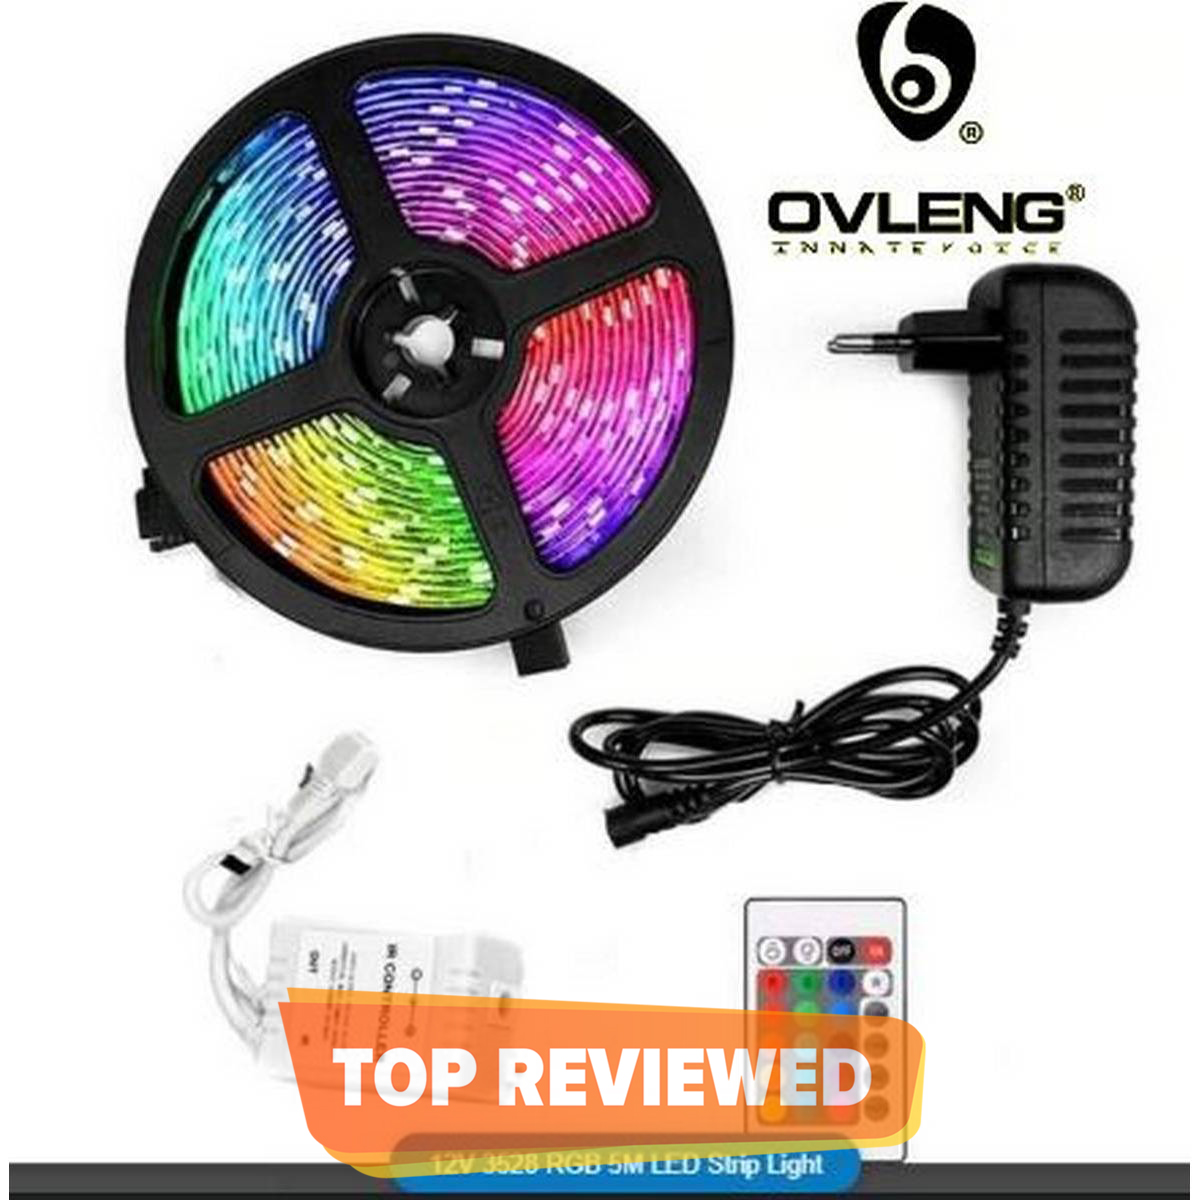 OVLENG RGB Led Light Waterproof Remote Control Color Changing - For Gaming Room